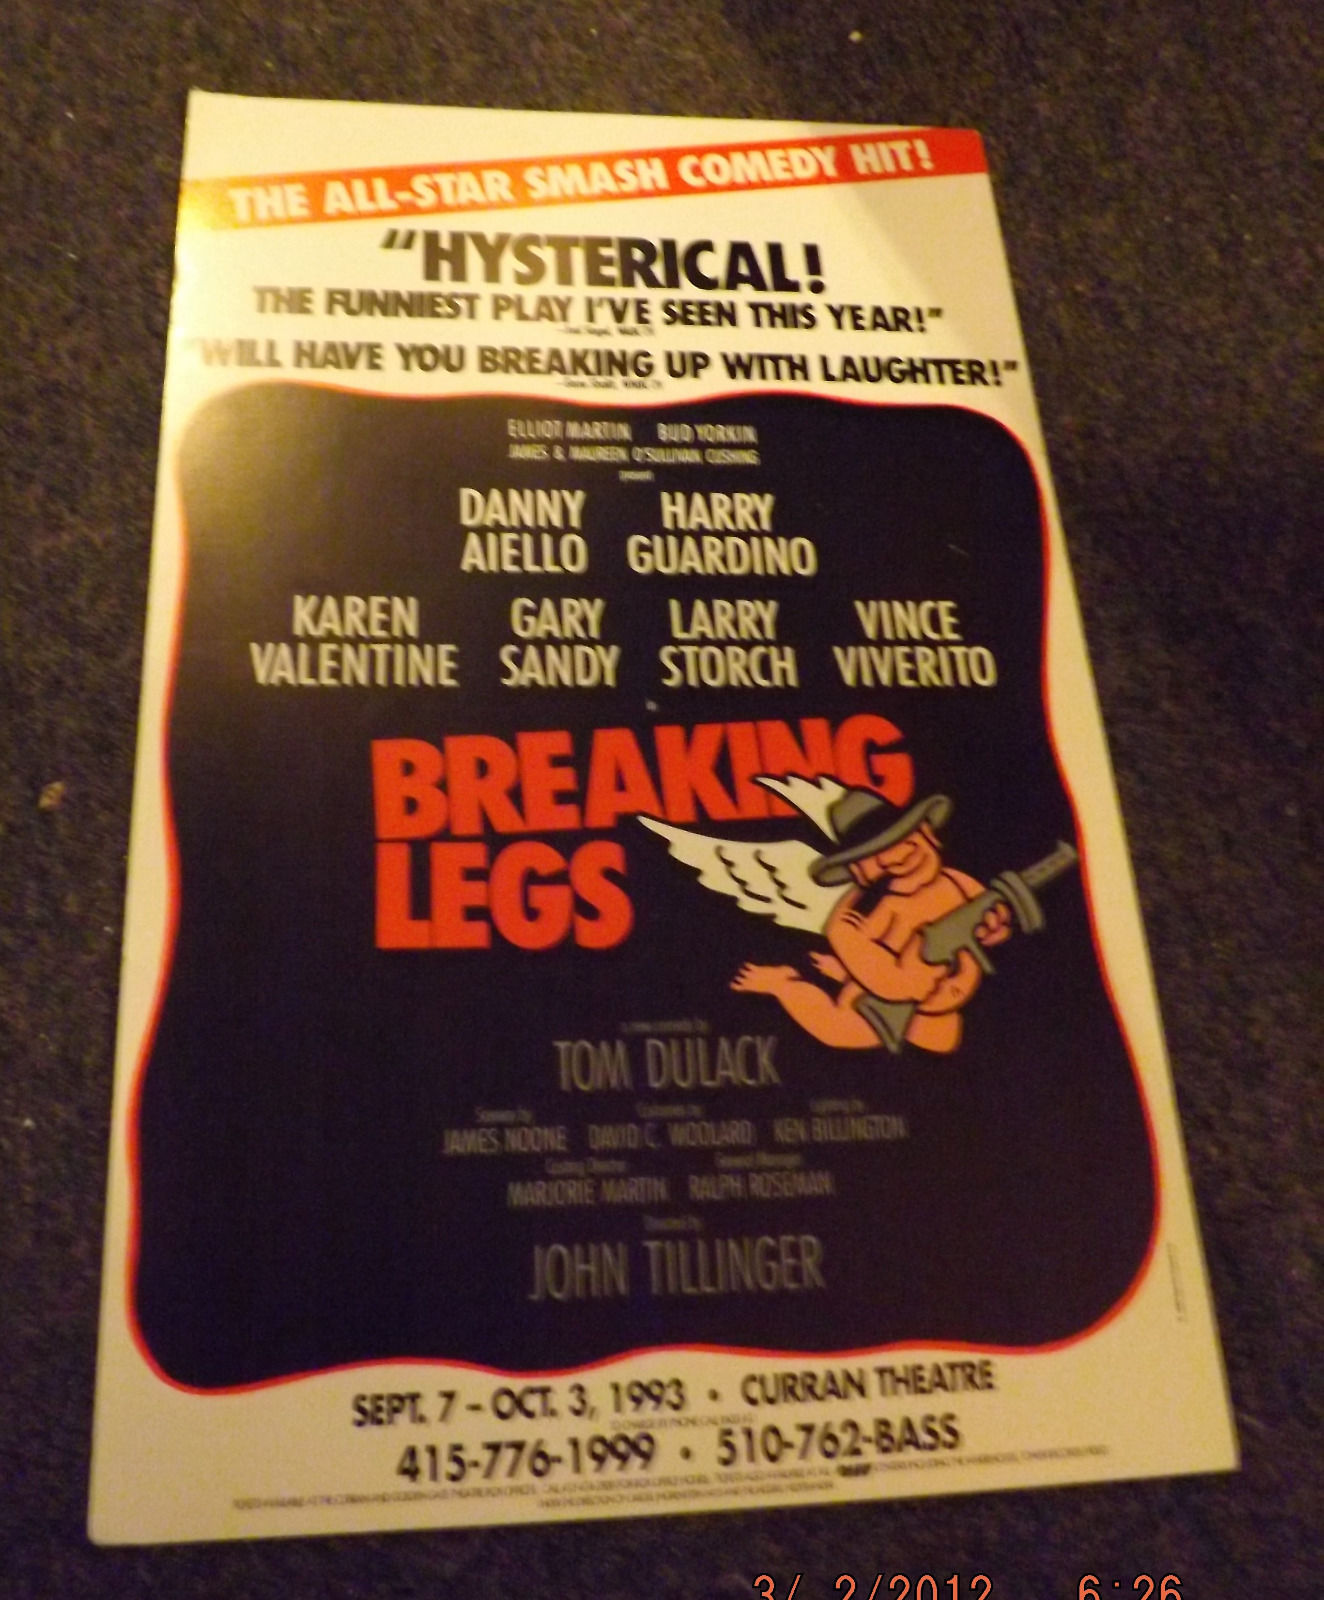 BREAKING LEGS POSTER - KAREN VALENTINE, HARRY GUARDINO & DANNY AIELLO